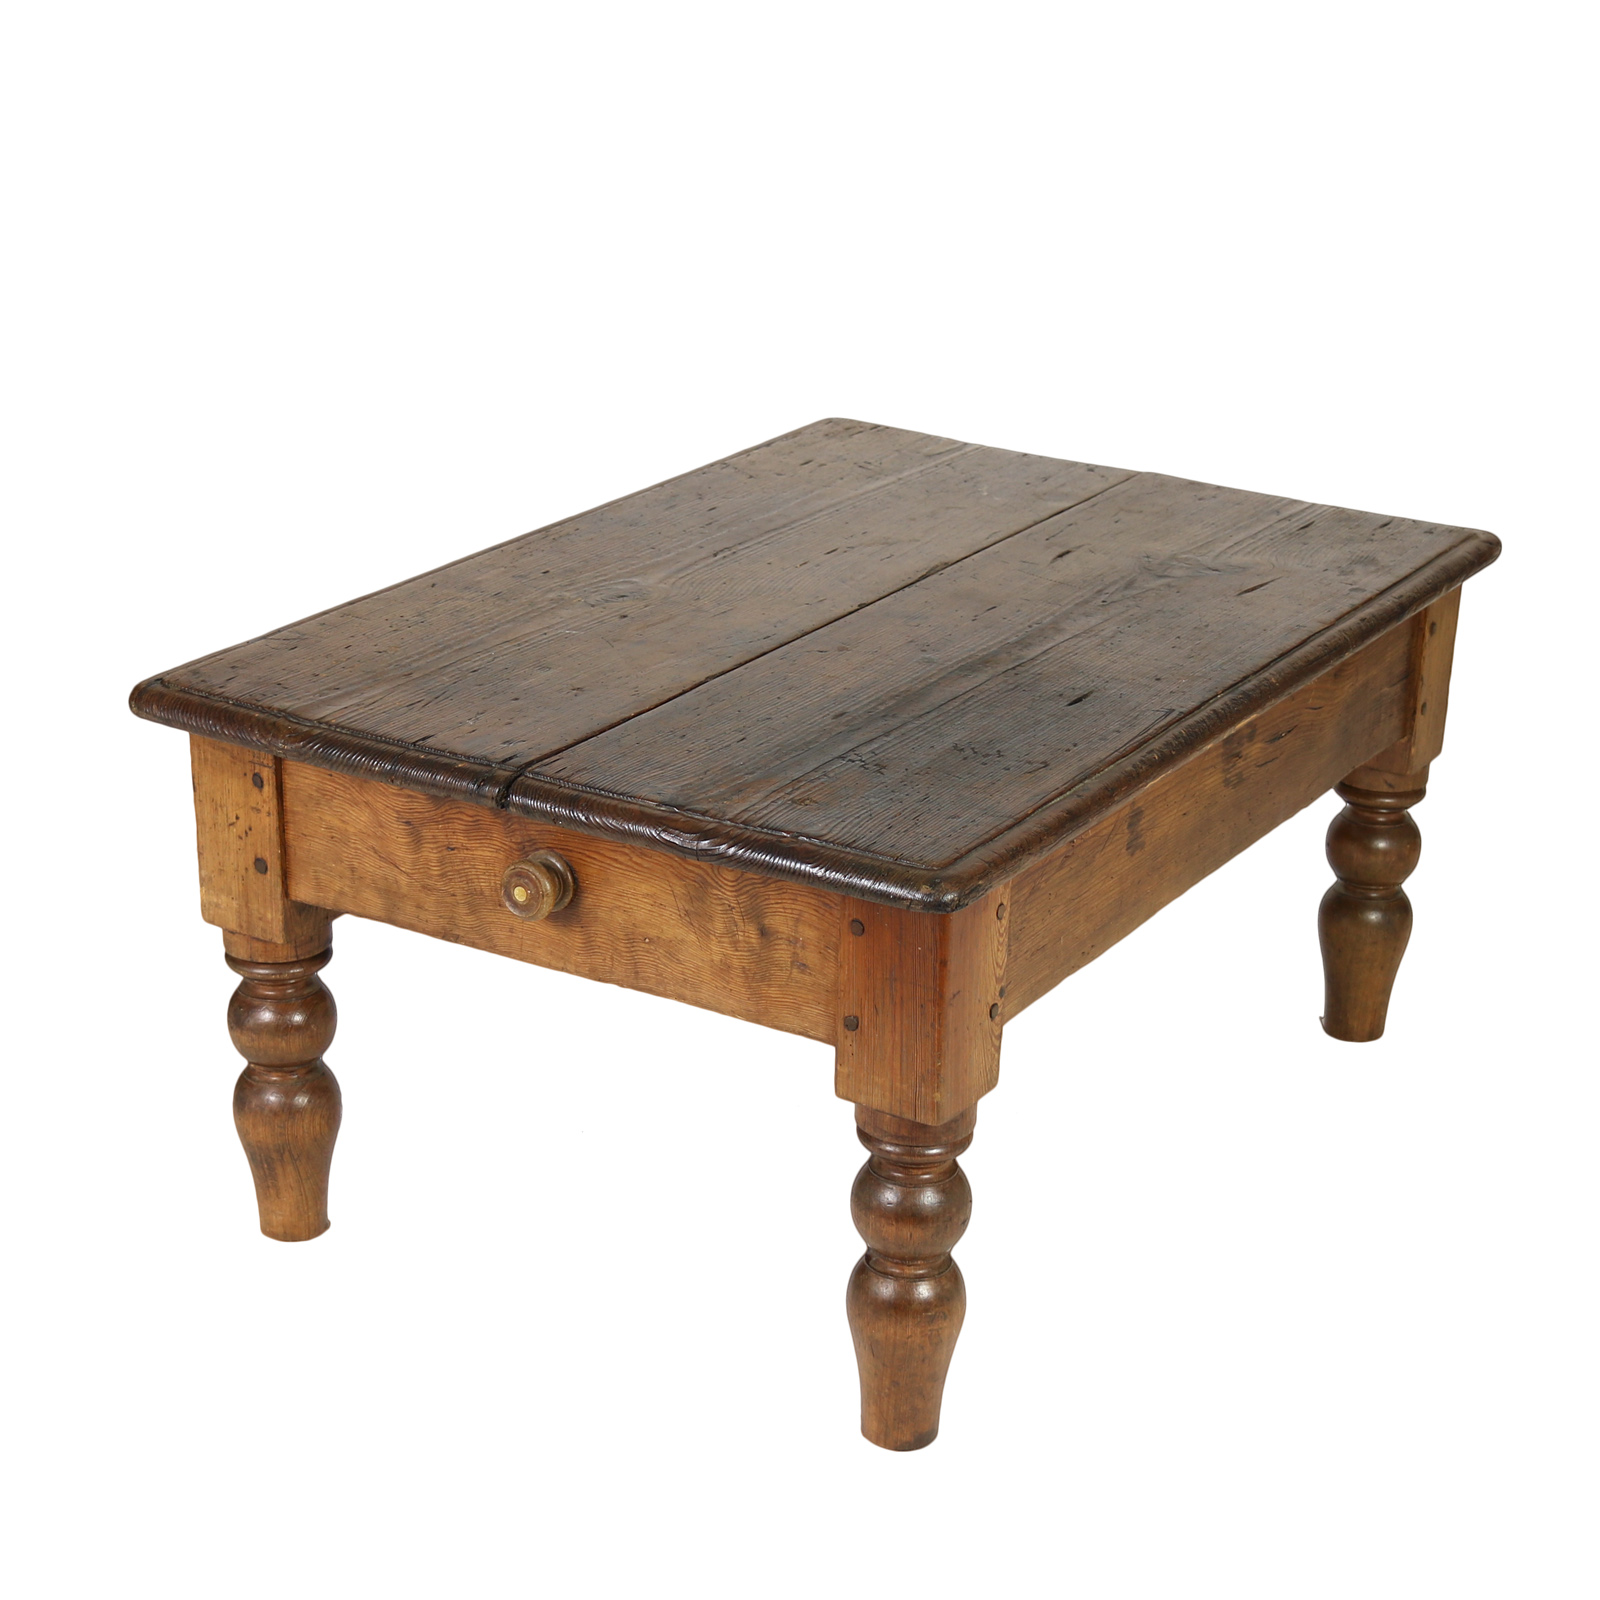 Rustic Pine Low Table 19th Century 415 355 1690